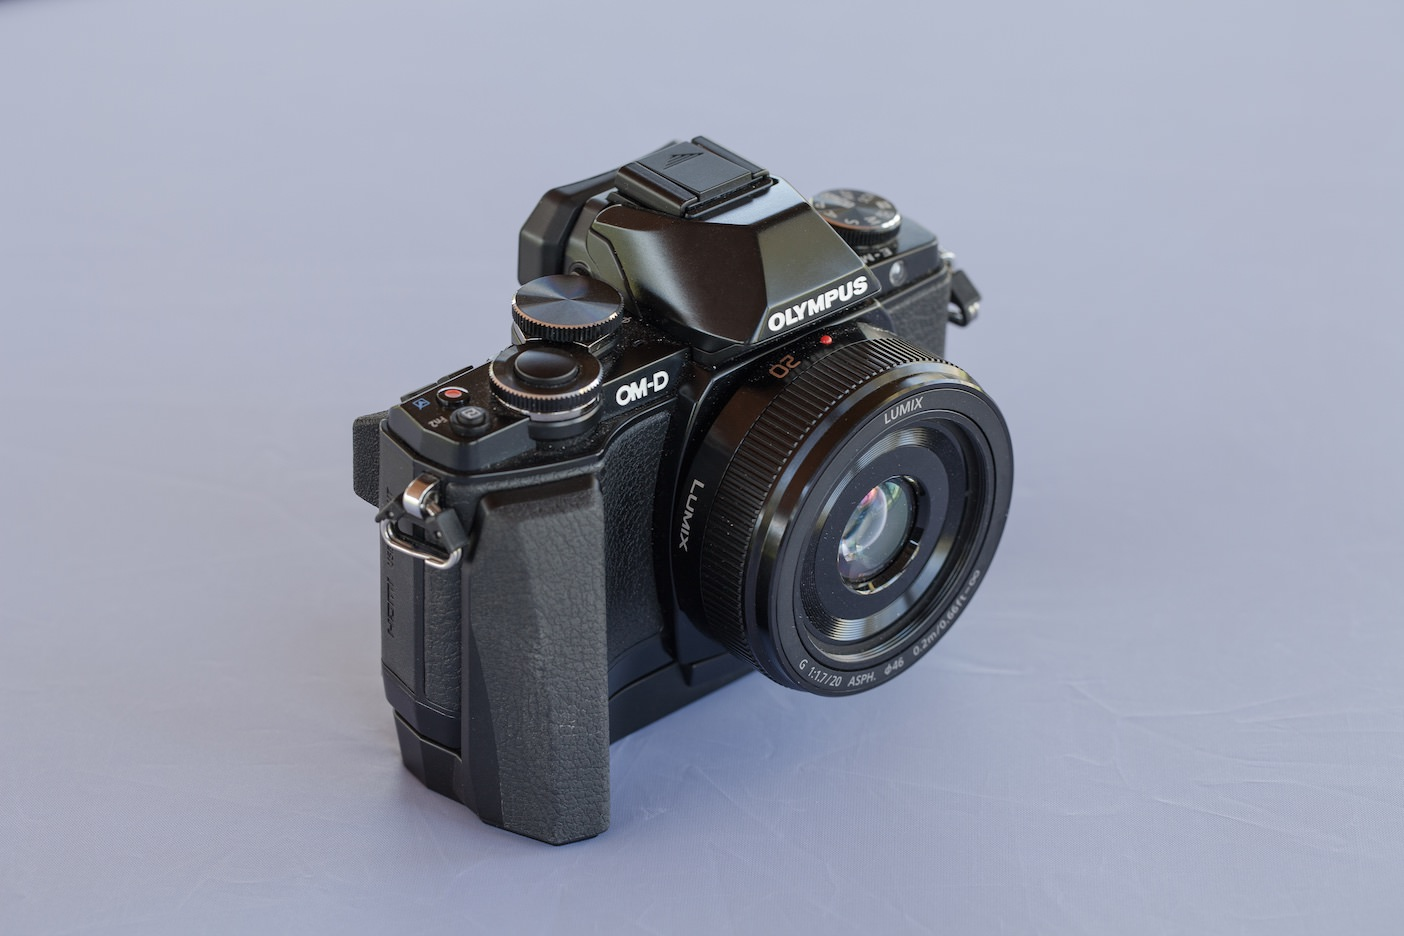 Panasonic Lumix 20mm F 17 Pancake Lens The Newsprint G 25mm F17 Asph First And Foremost Offers A 40mm Full Frame Equivalent Focal Length Which Is Generally Considered To Be An Odd